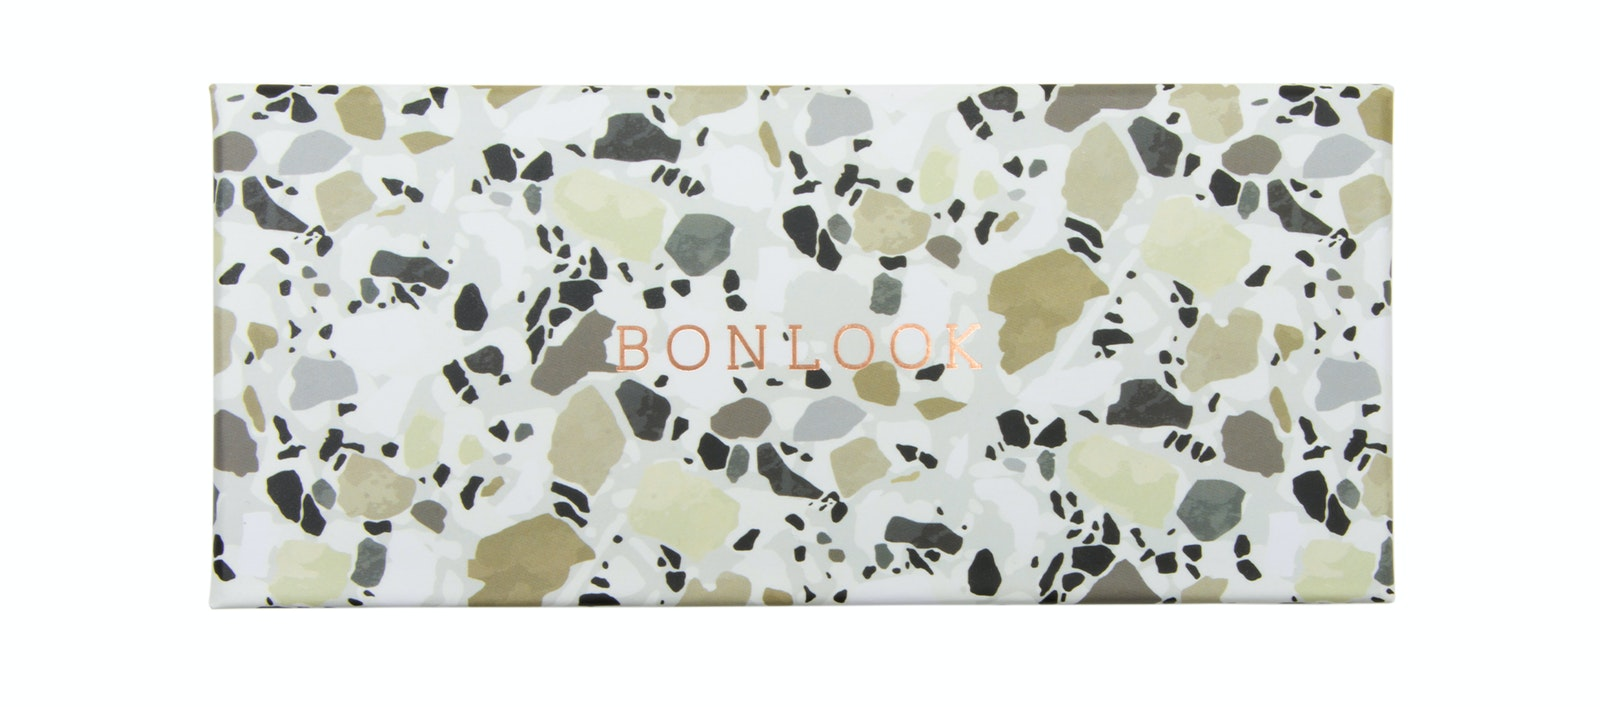 Affordable Fashion Glasses Accessory Men Women New Classic Bonlook Case Khaki Terrazzo Tilt